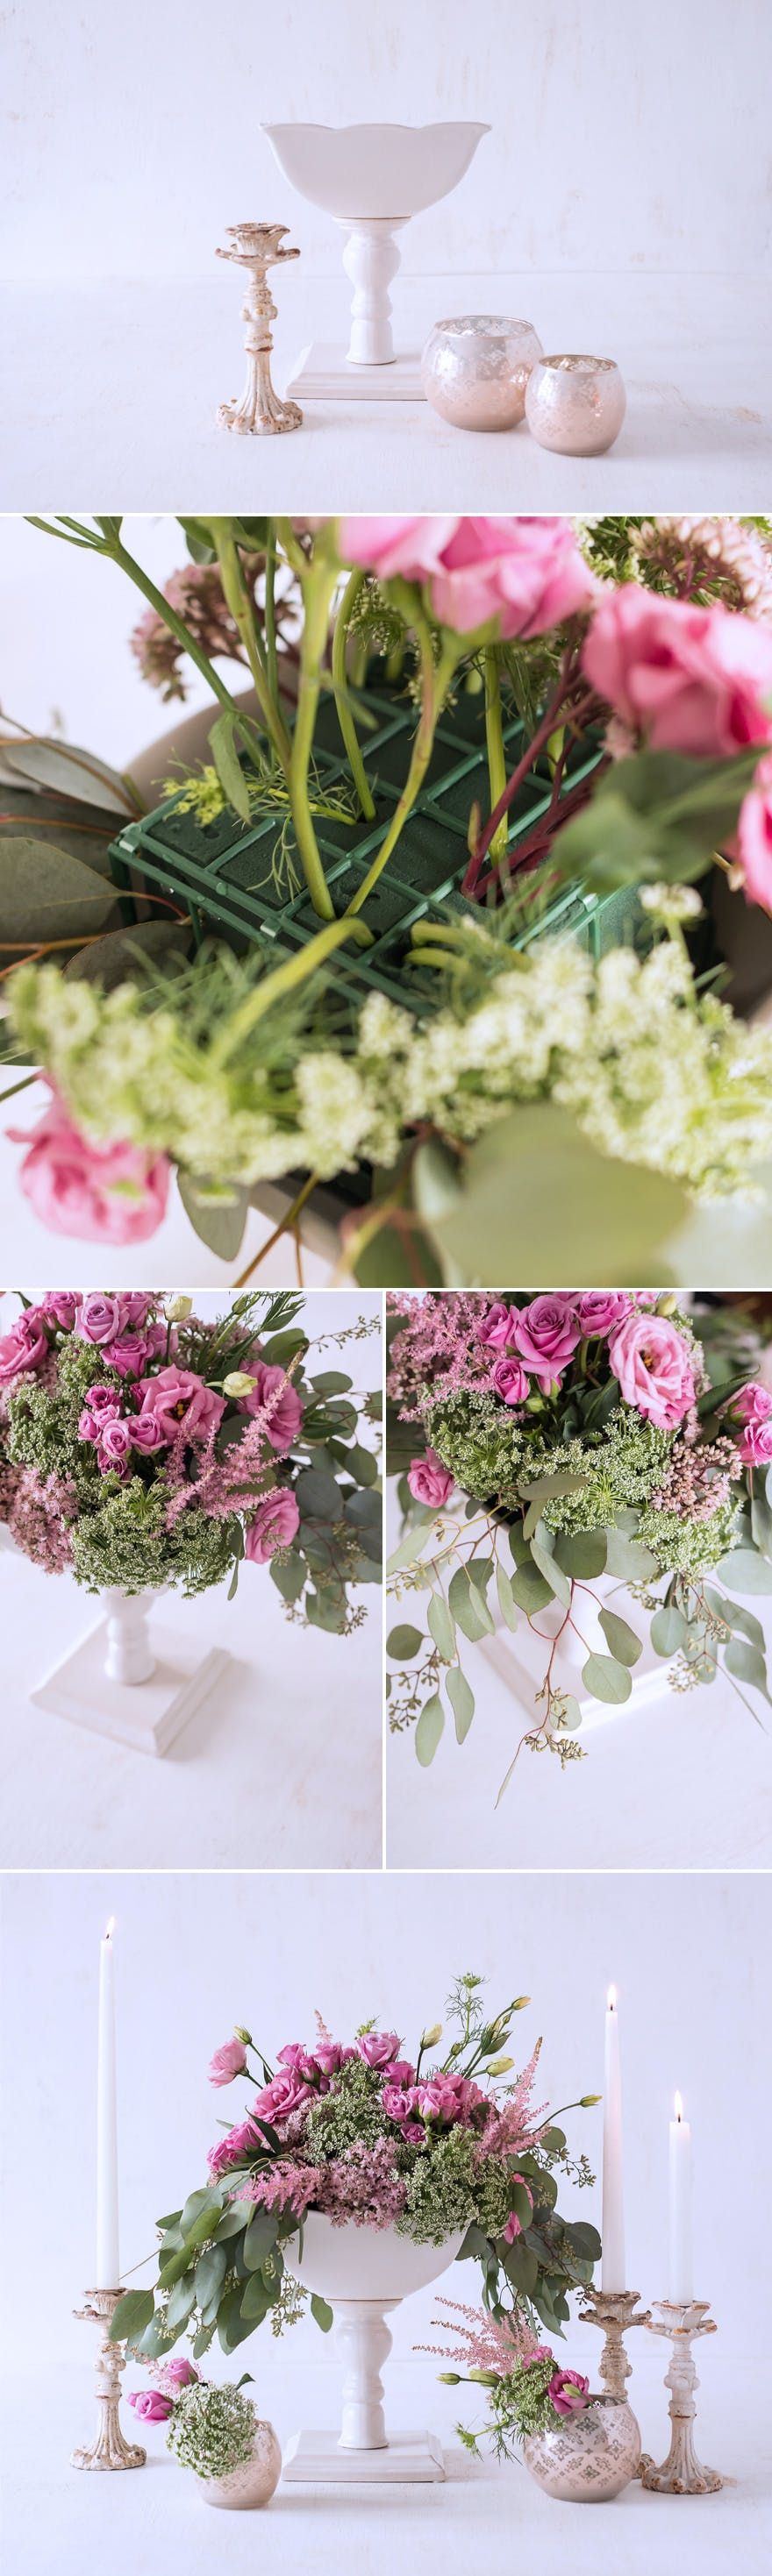 fb0704e2a221e7 Pink and Green DIY Centrepiece with Lisianthus Astilbe Queen Anne s Lace  Spray Roses Seeded Eucalyptus and